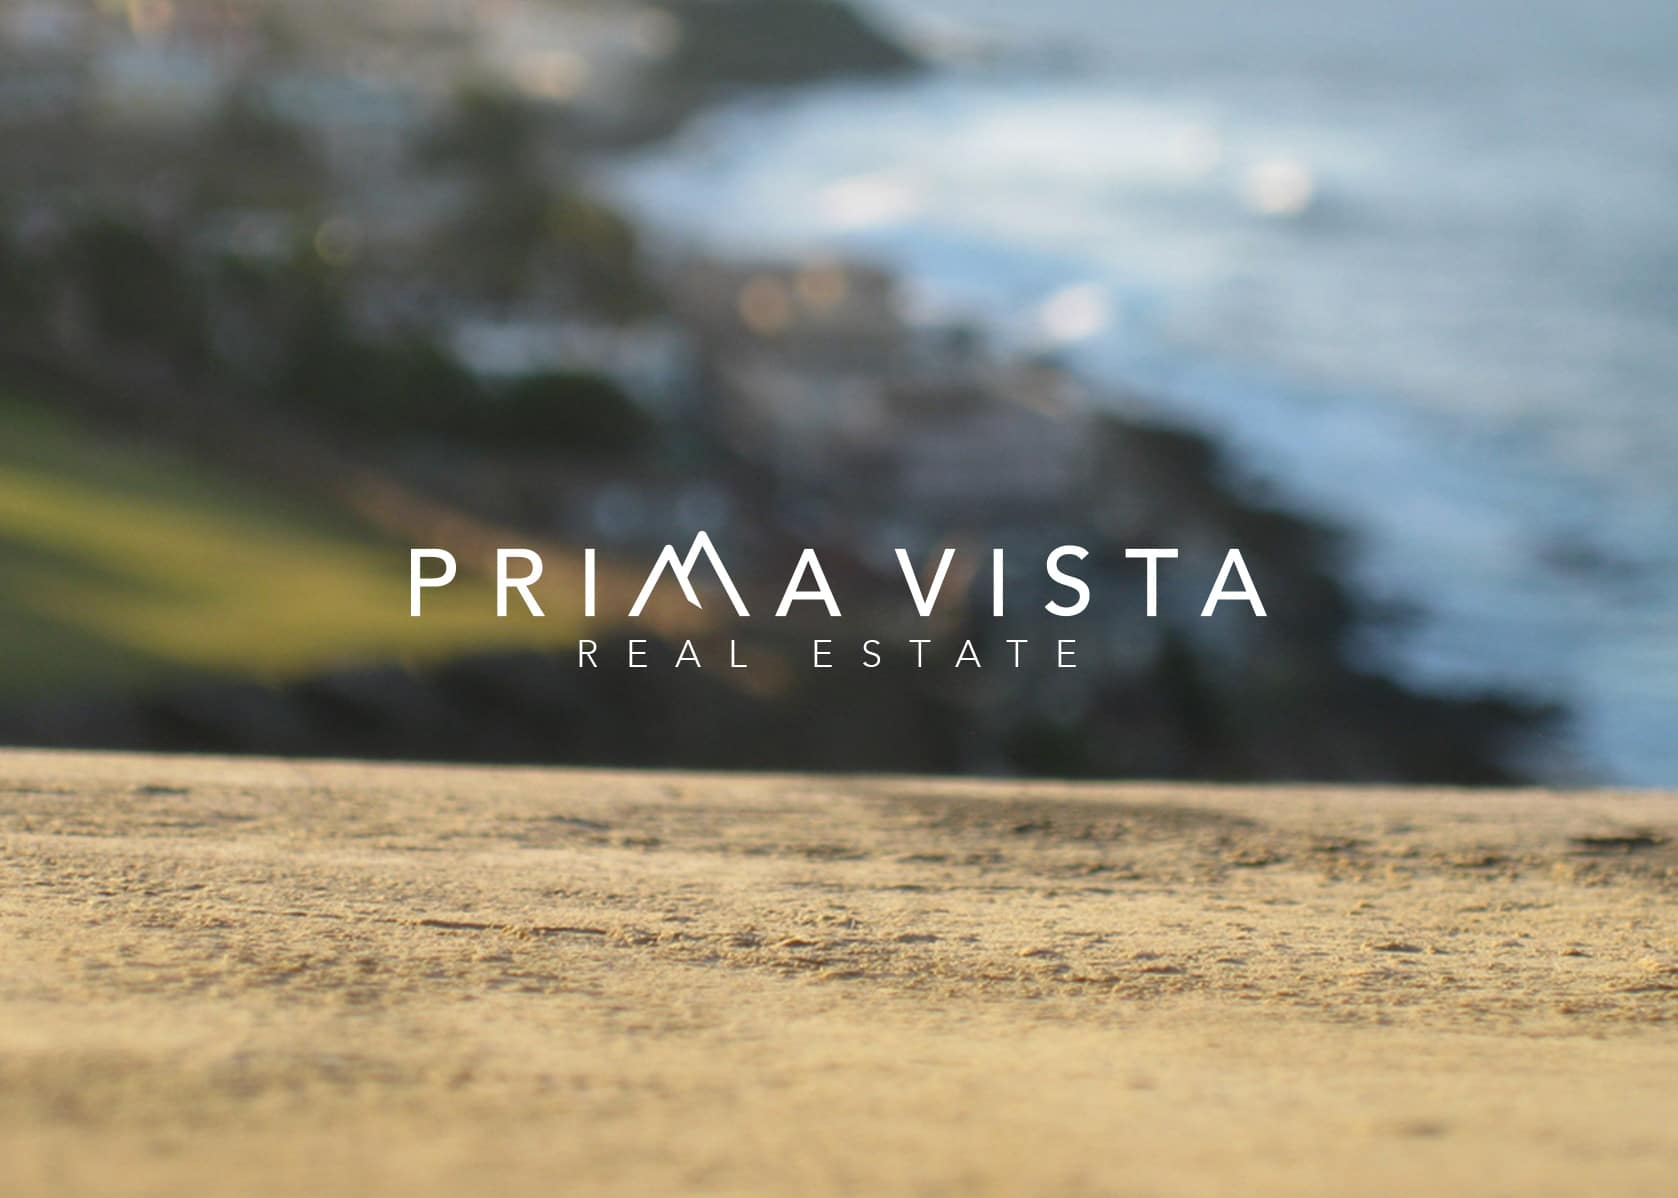 real estate branding, brand identity real estate, prima vista